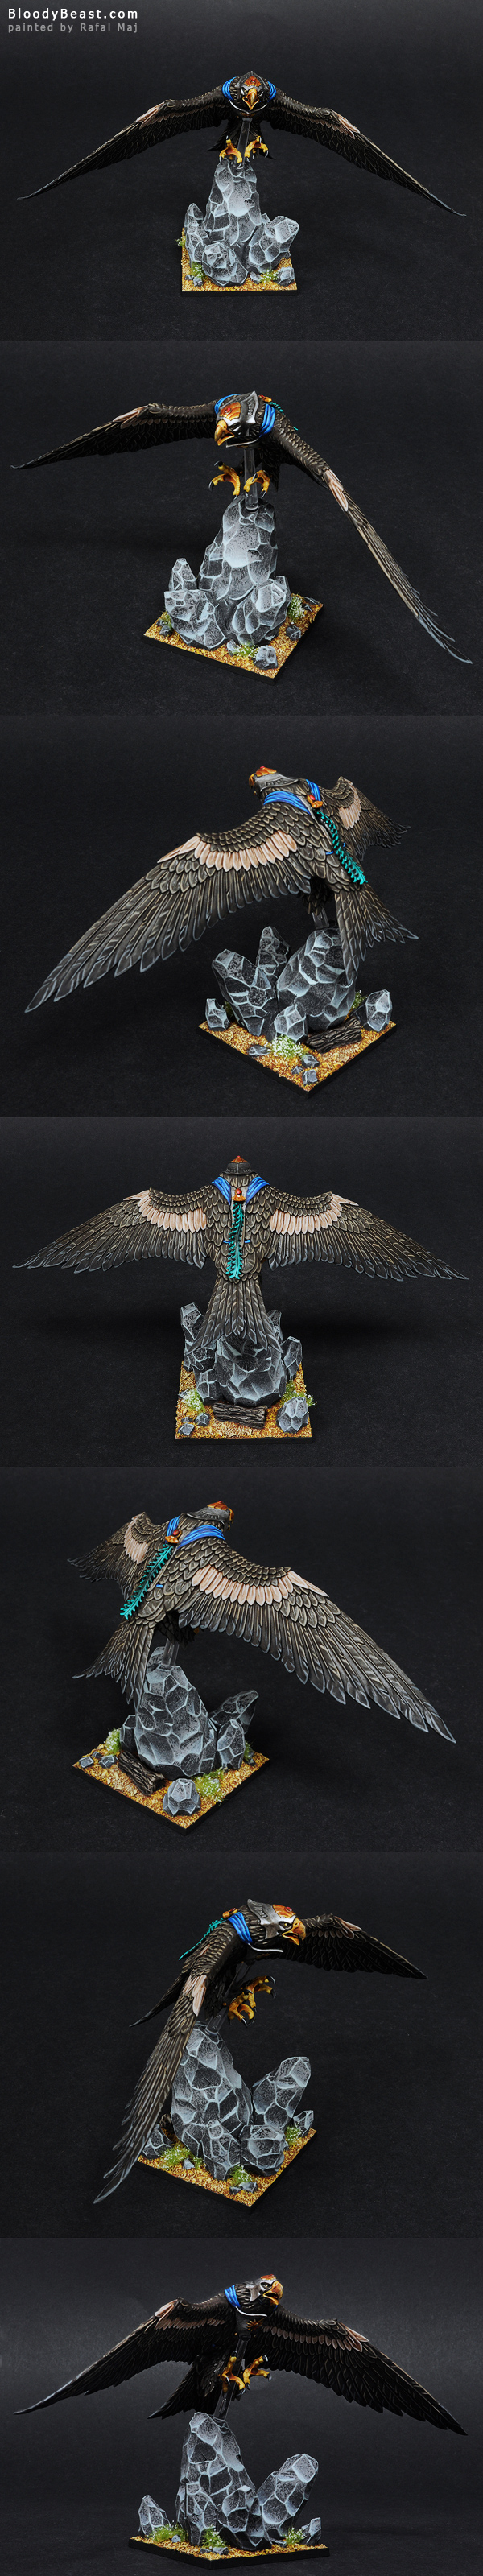 High Elf Great Eagle painted by Rafal Maj (BloodyBeast.com)